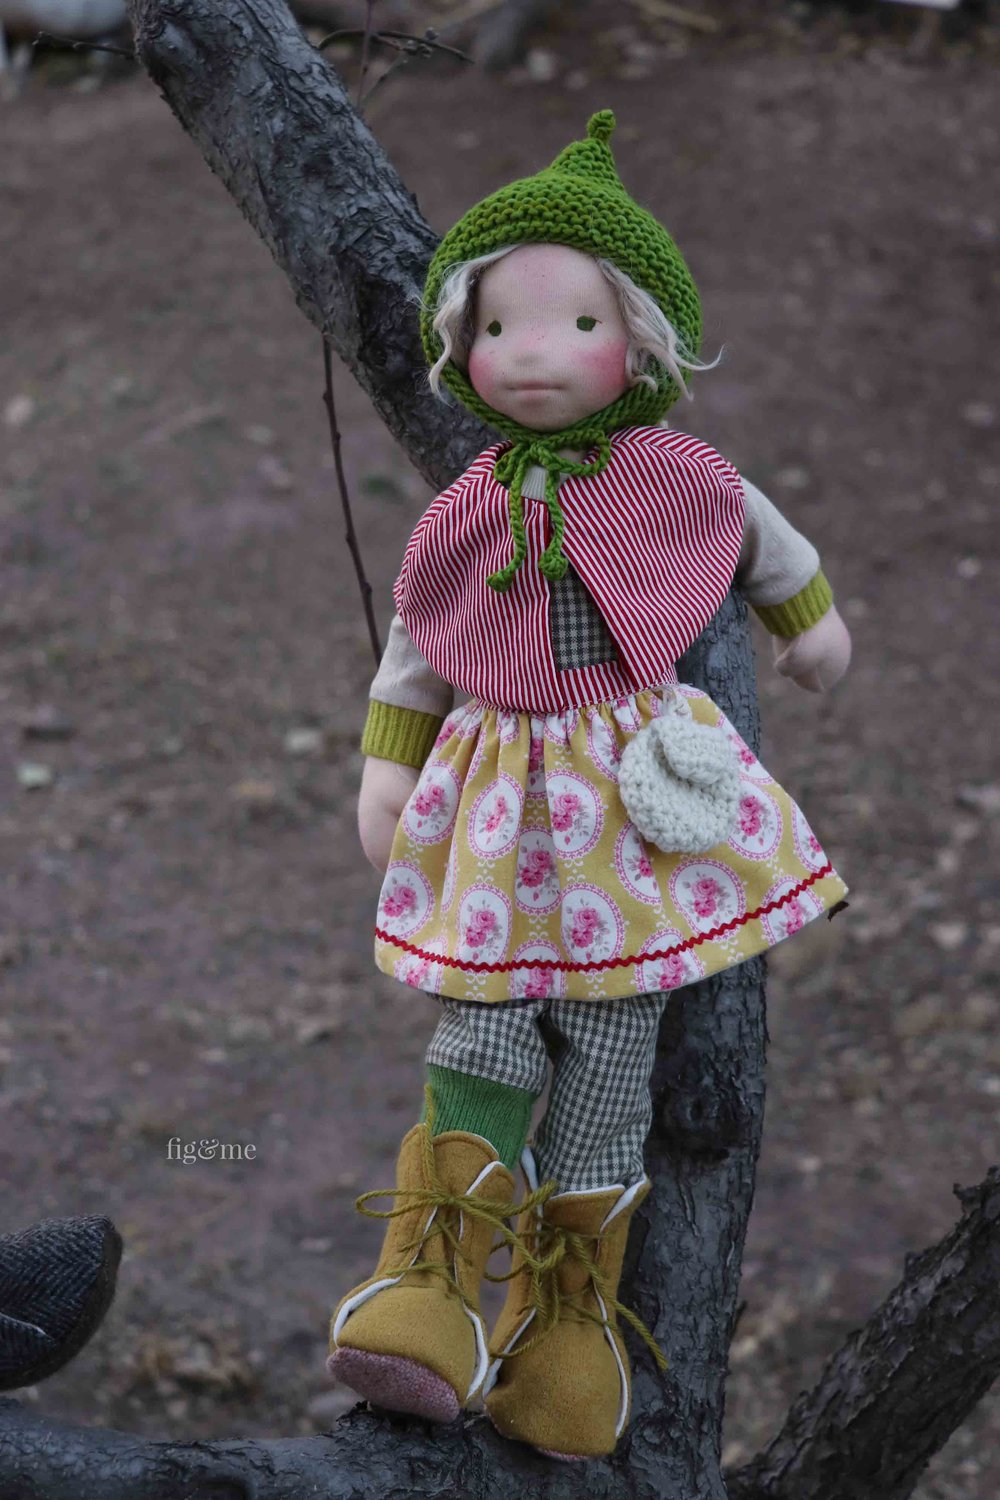 Another little doll climbing trees, by fig and me.